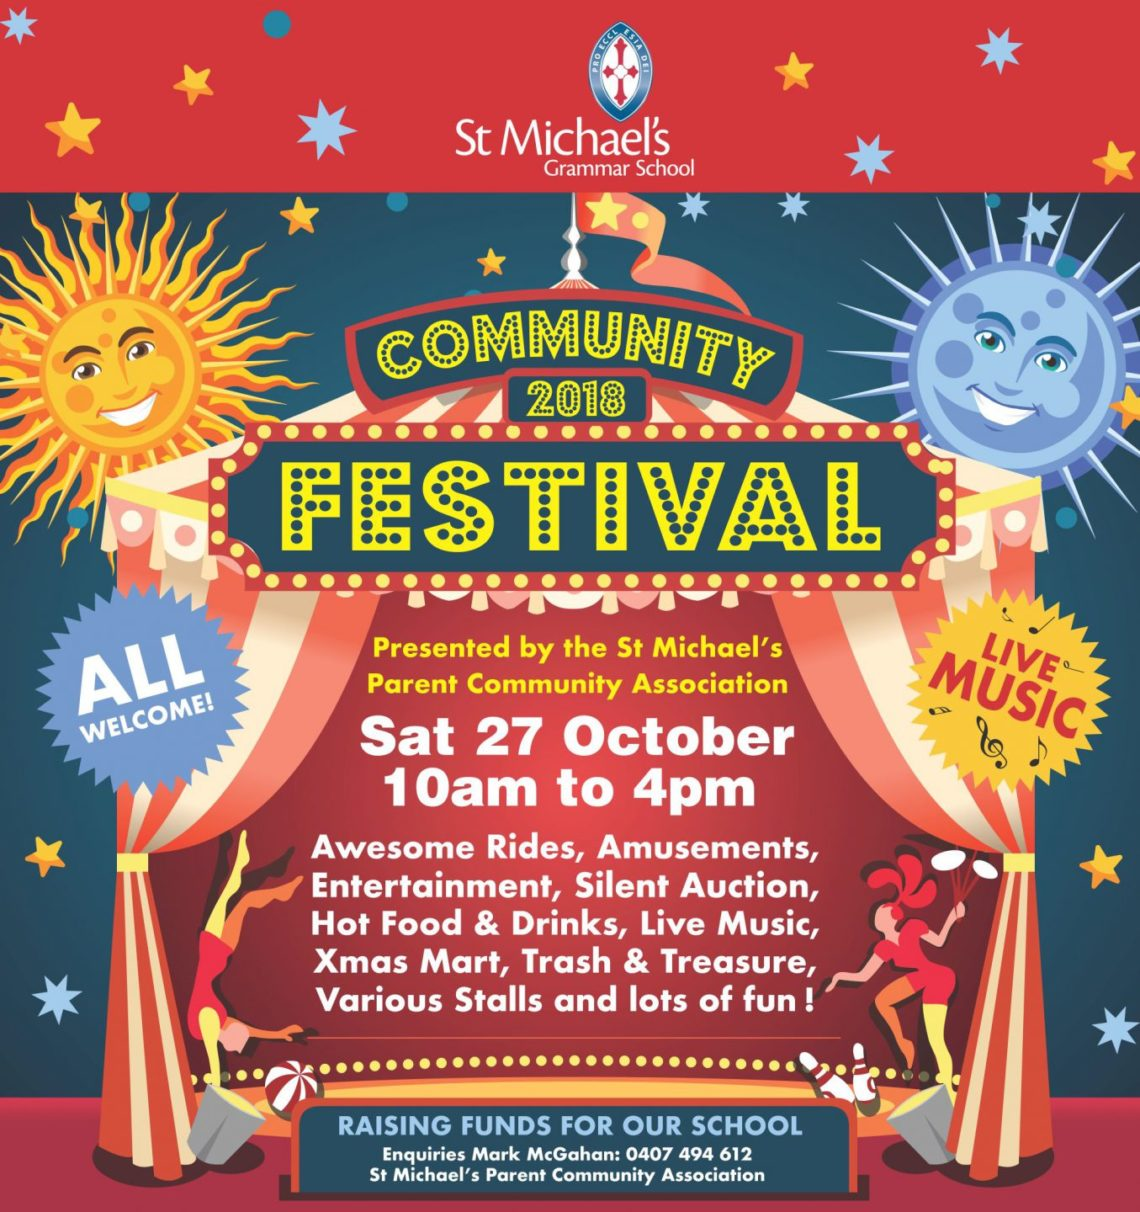 Join us at the St Michael's Community Festival 2018